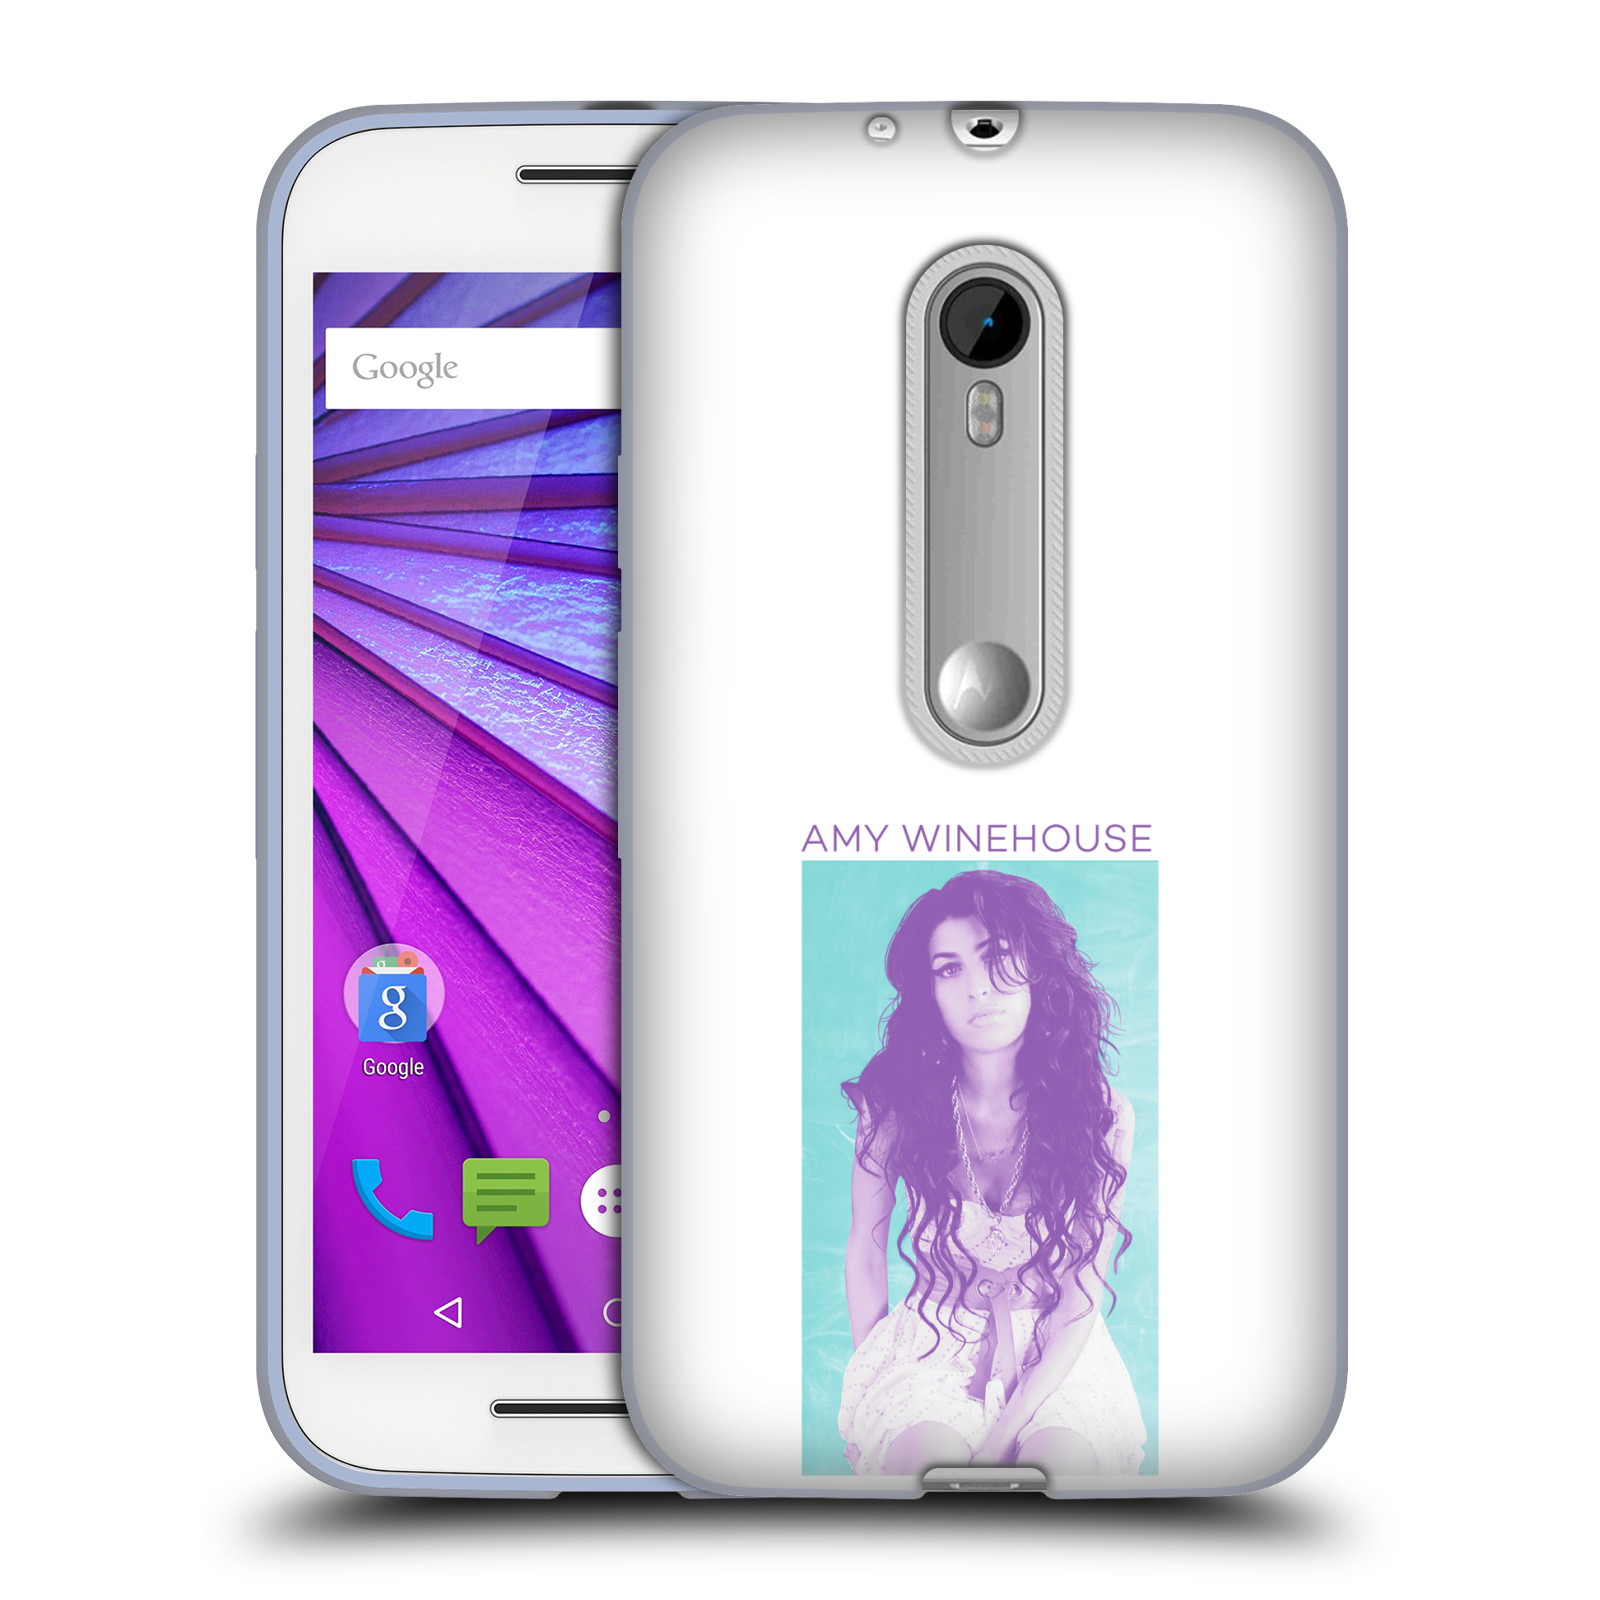 OFFICIAL-AMY-WINEHOUSE-PORTRAITS-SOFT-GEL-CASE-FOR-MOTOROLA-PHONES-2